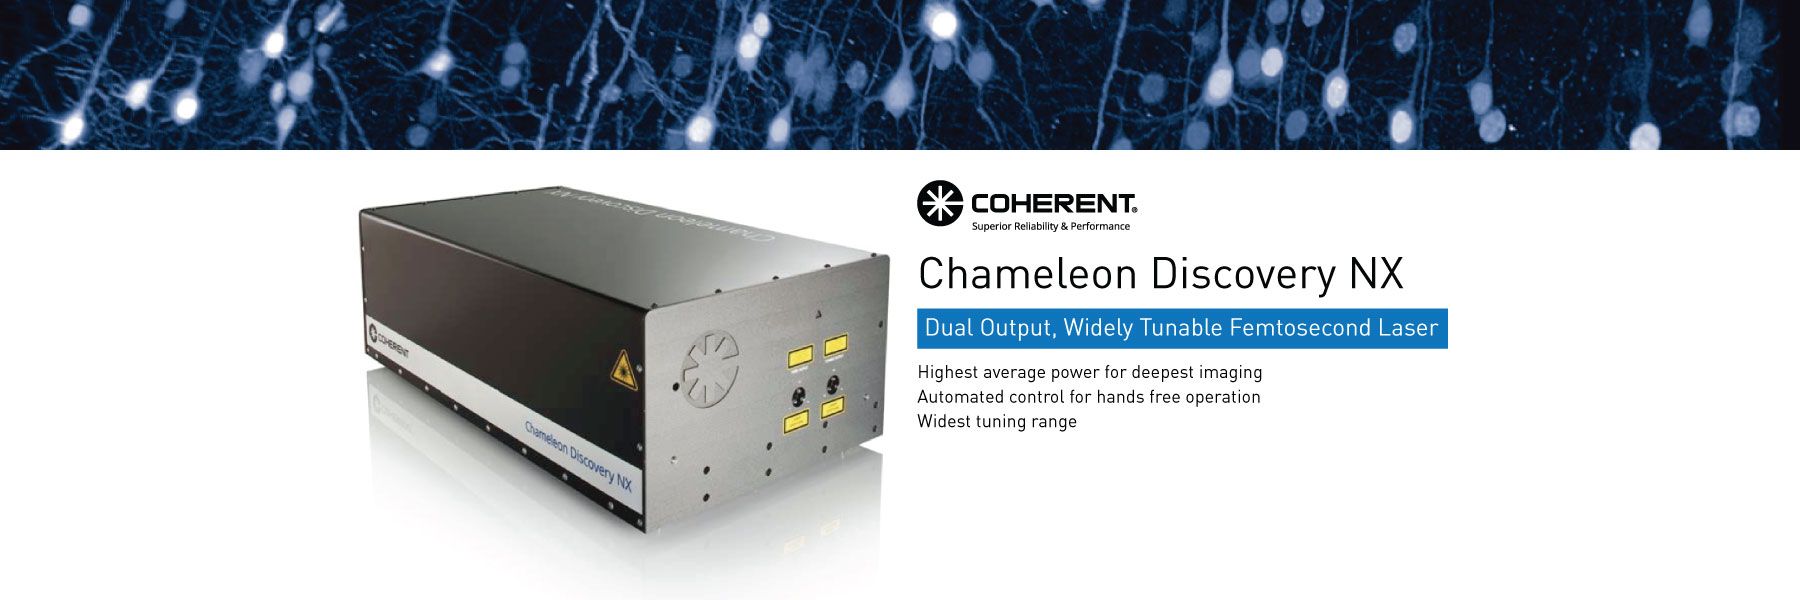 Chameleon Discovery NX